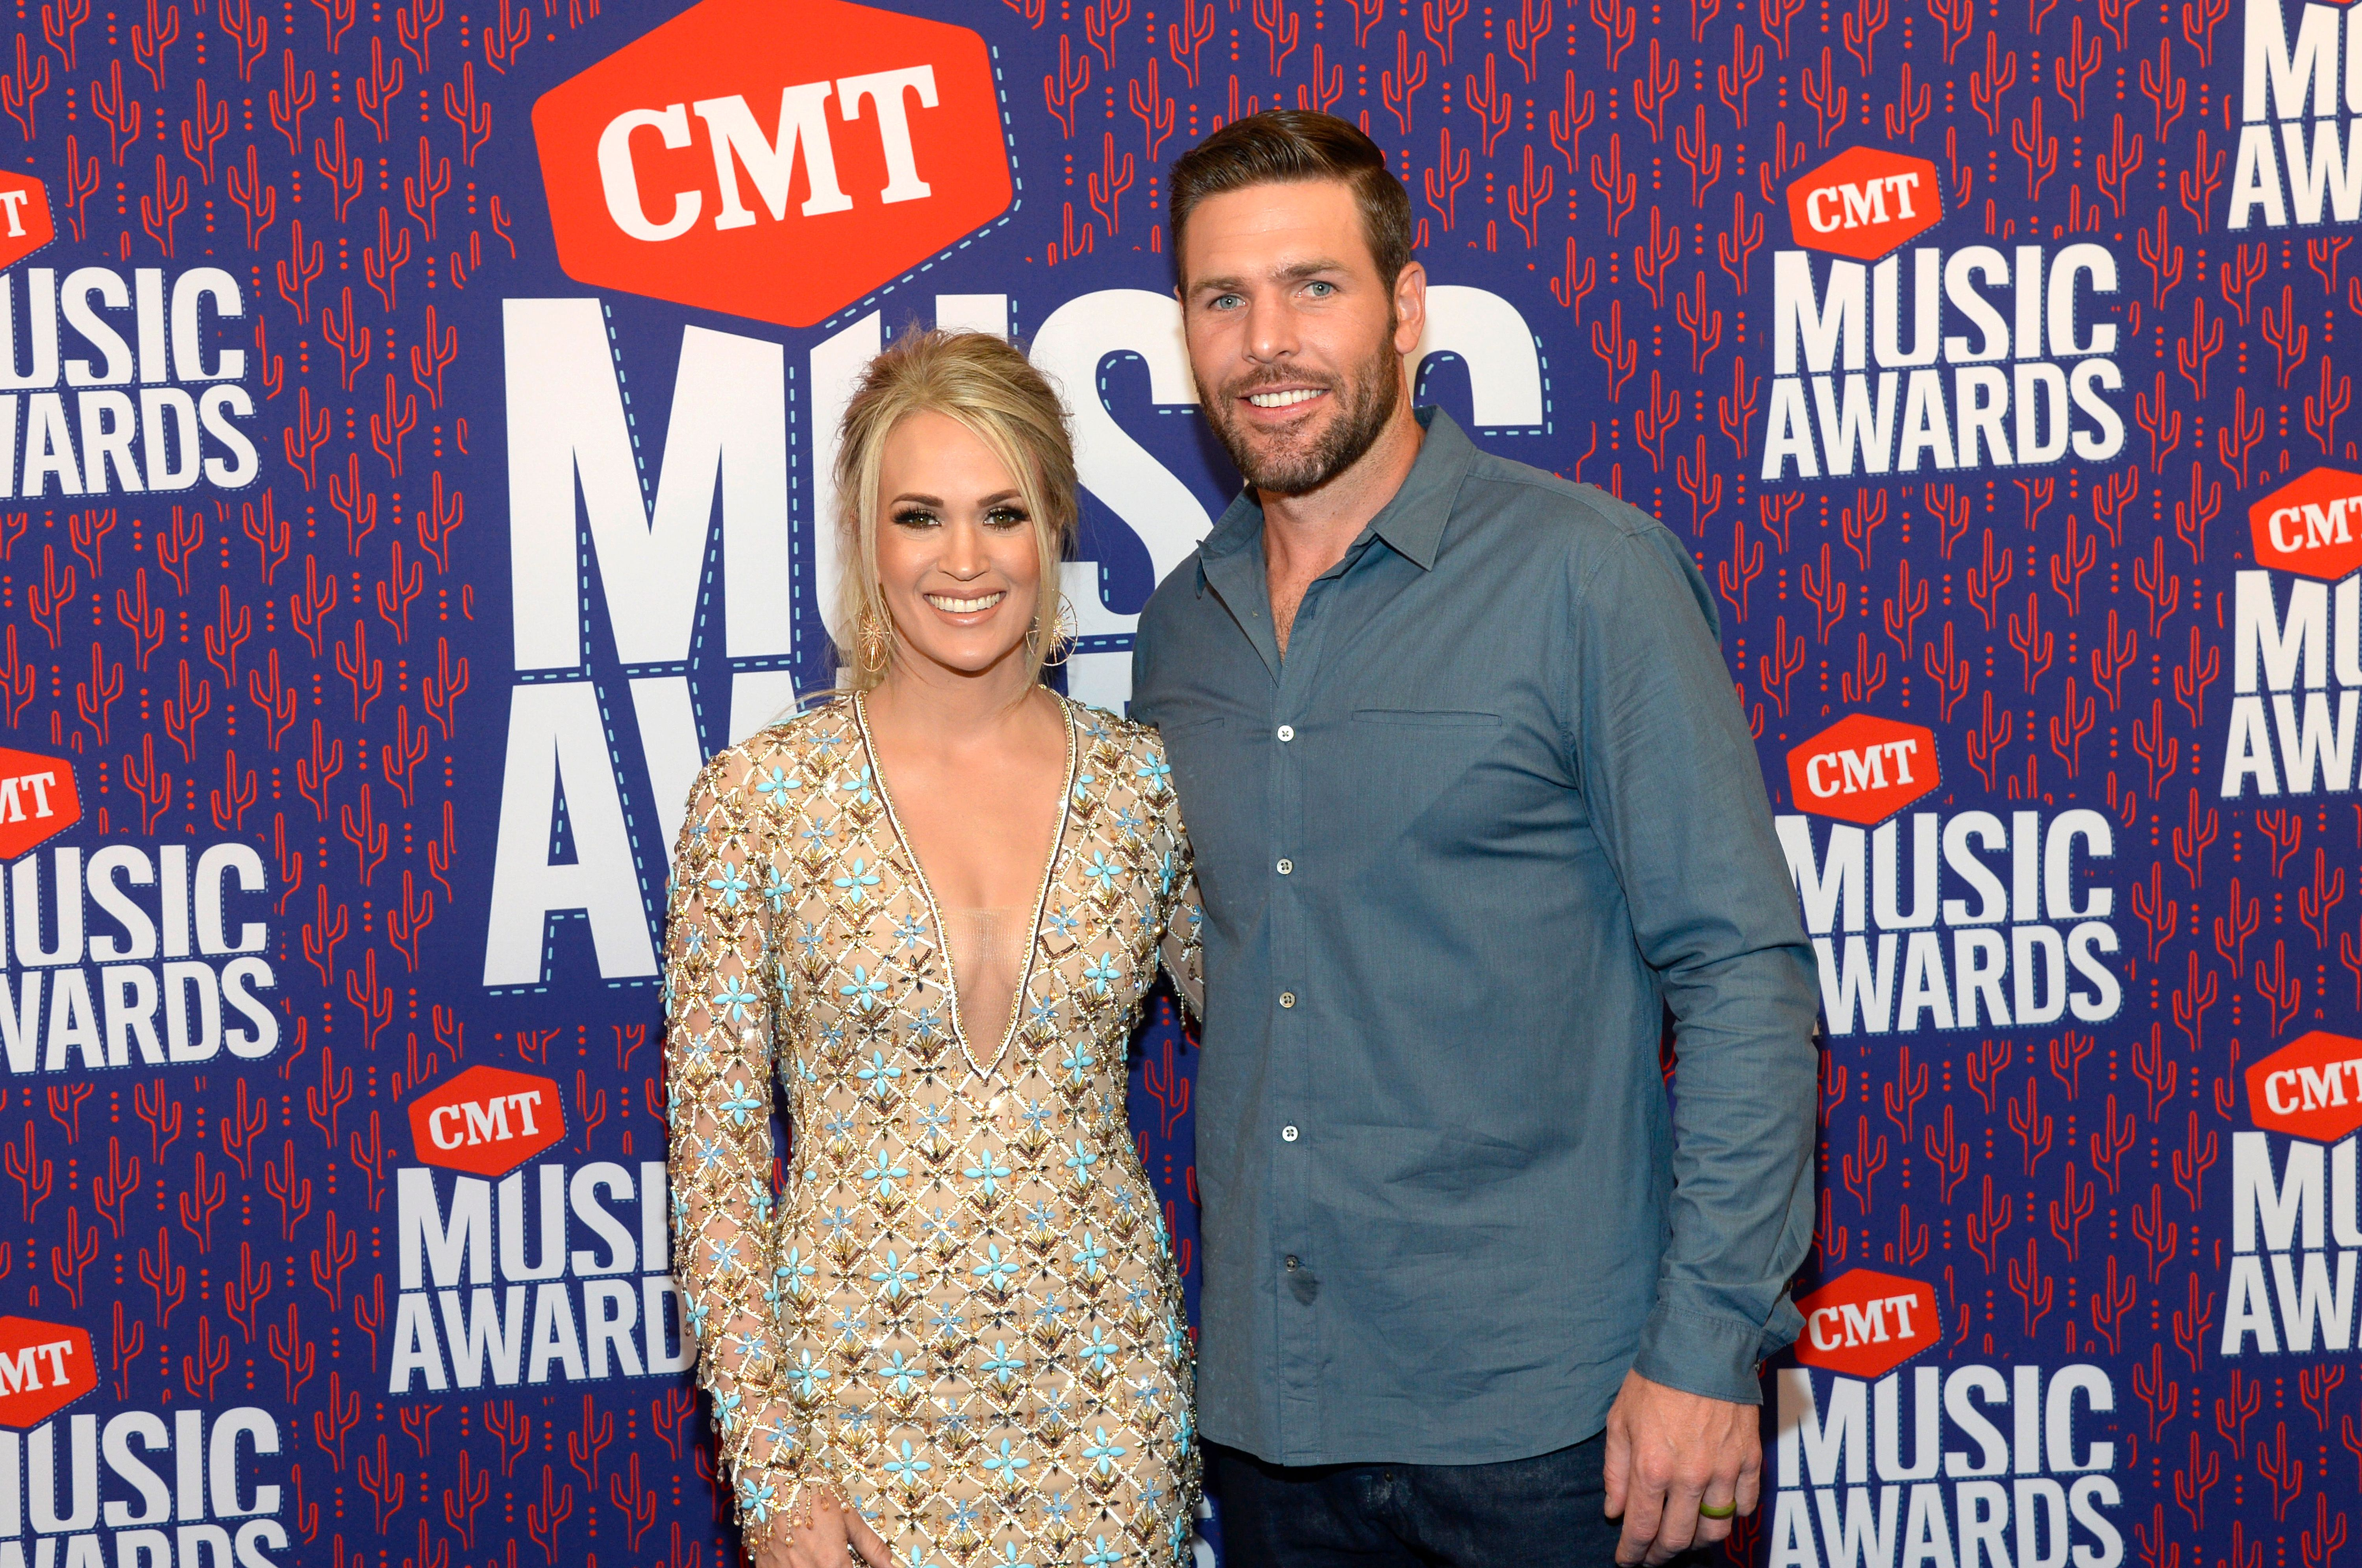 Carrie Underwood and Mike Fisher at the 2019 CMT Music Award at Bridgestone Arena on June 05, 2019   Photo: Getty Images